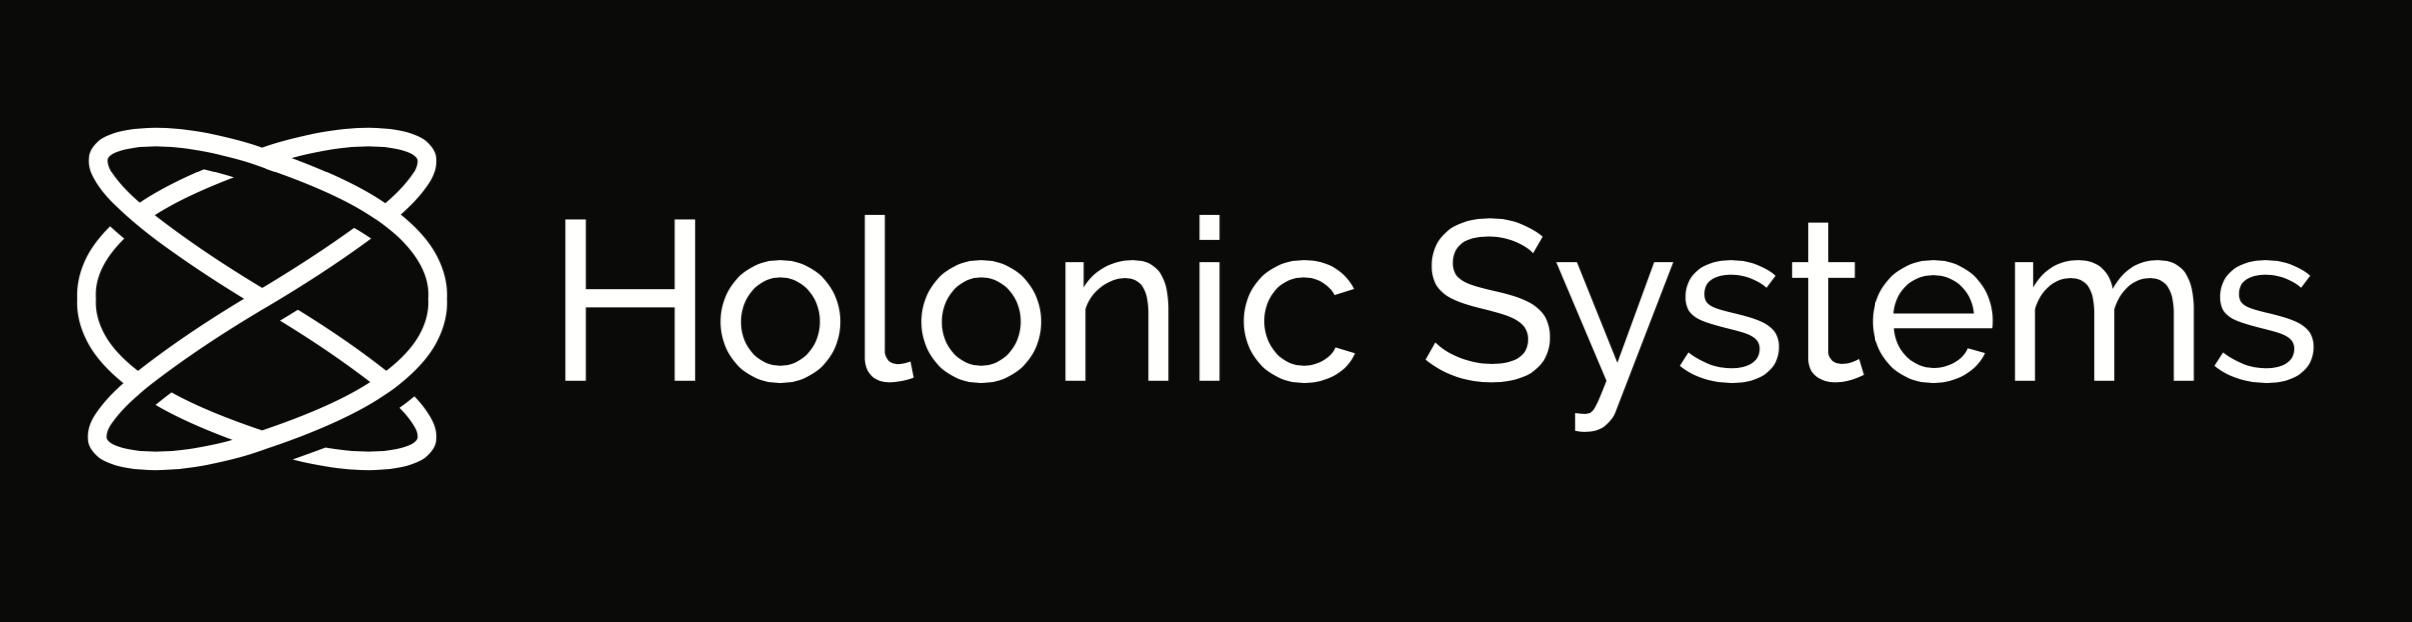 https://www.holonic.systems/